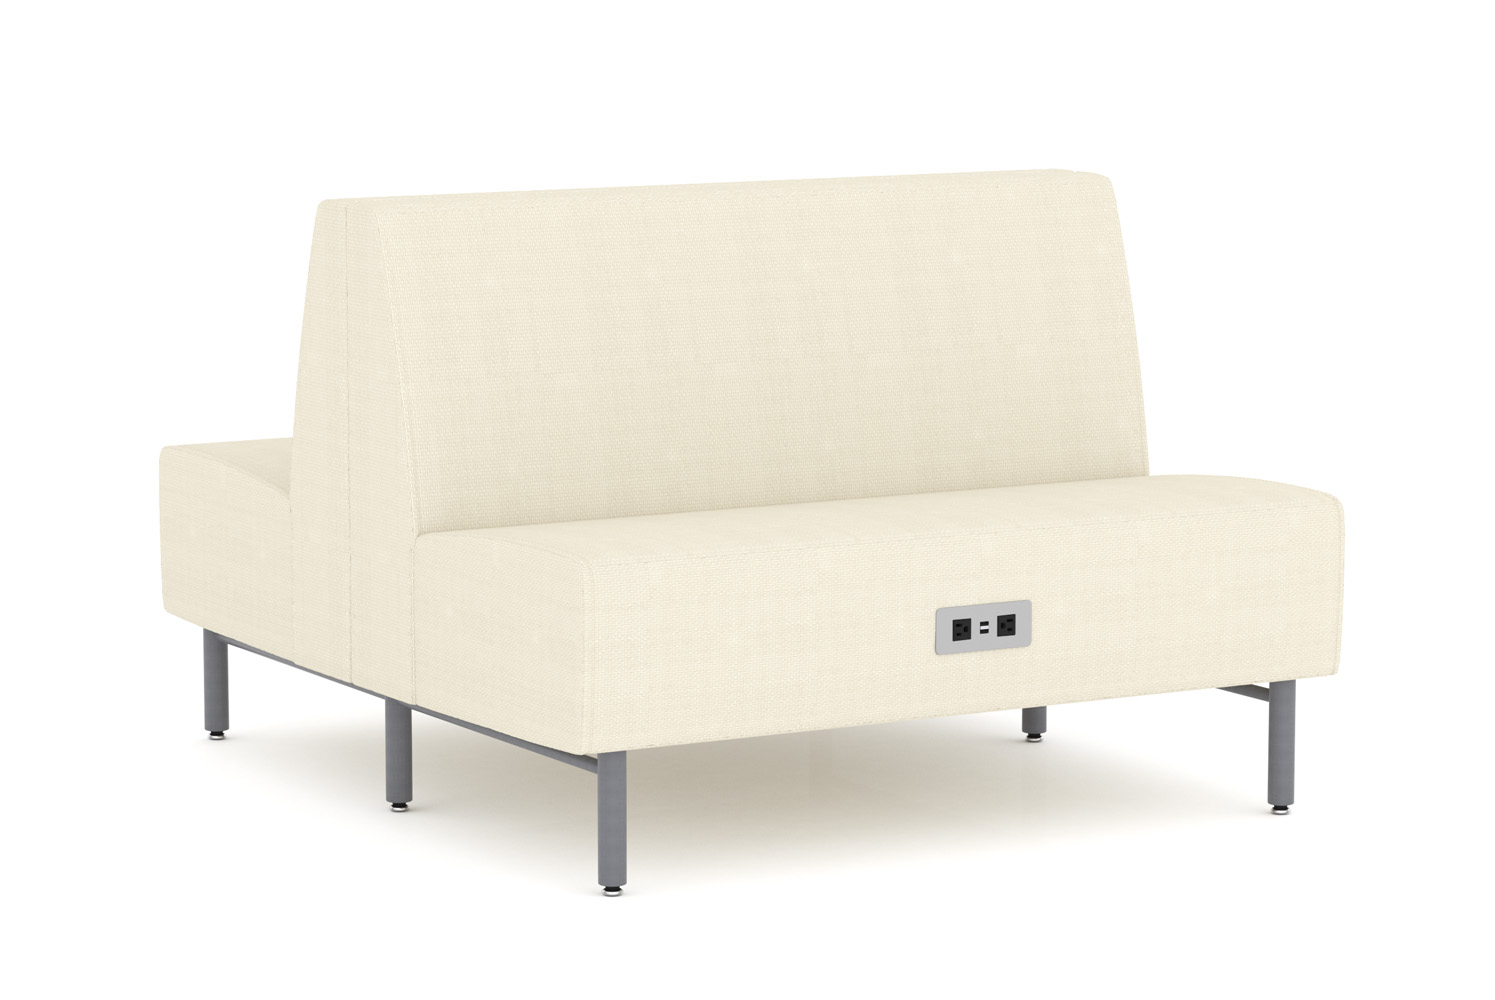 Tivoli, Banquette, Back-to-Back, 48 inch, Power/Data